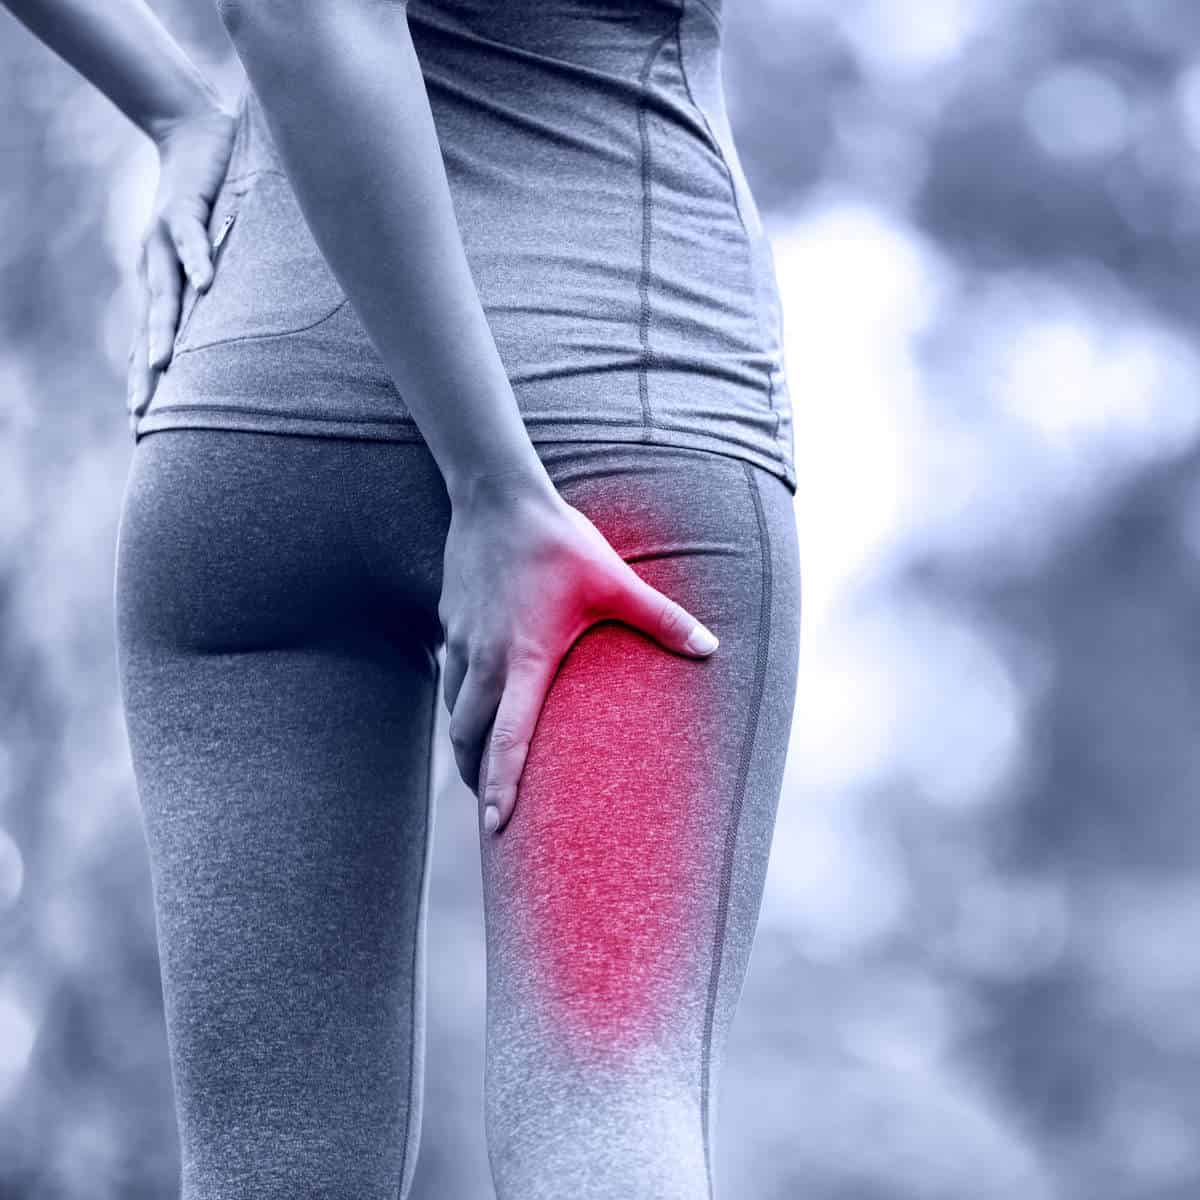 Muscle spasms or cramps